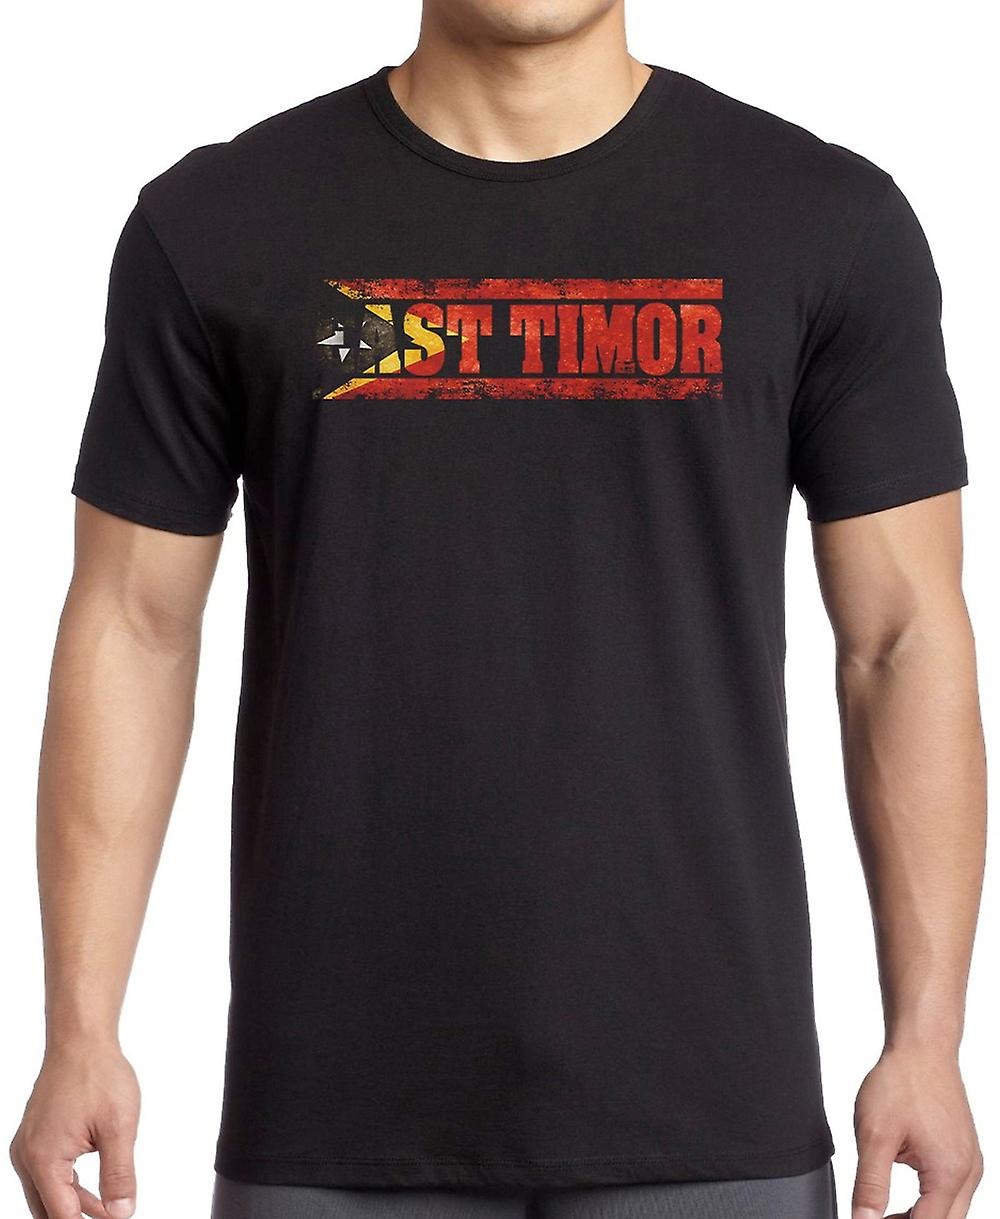 East Timor_ Flag - Words Kids T Shirt